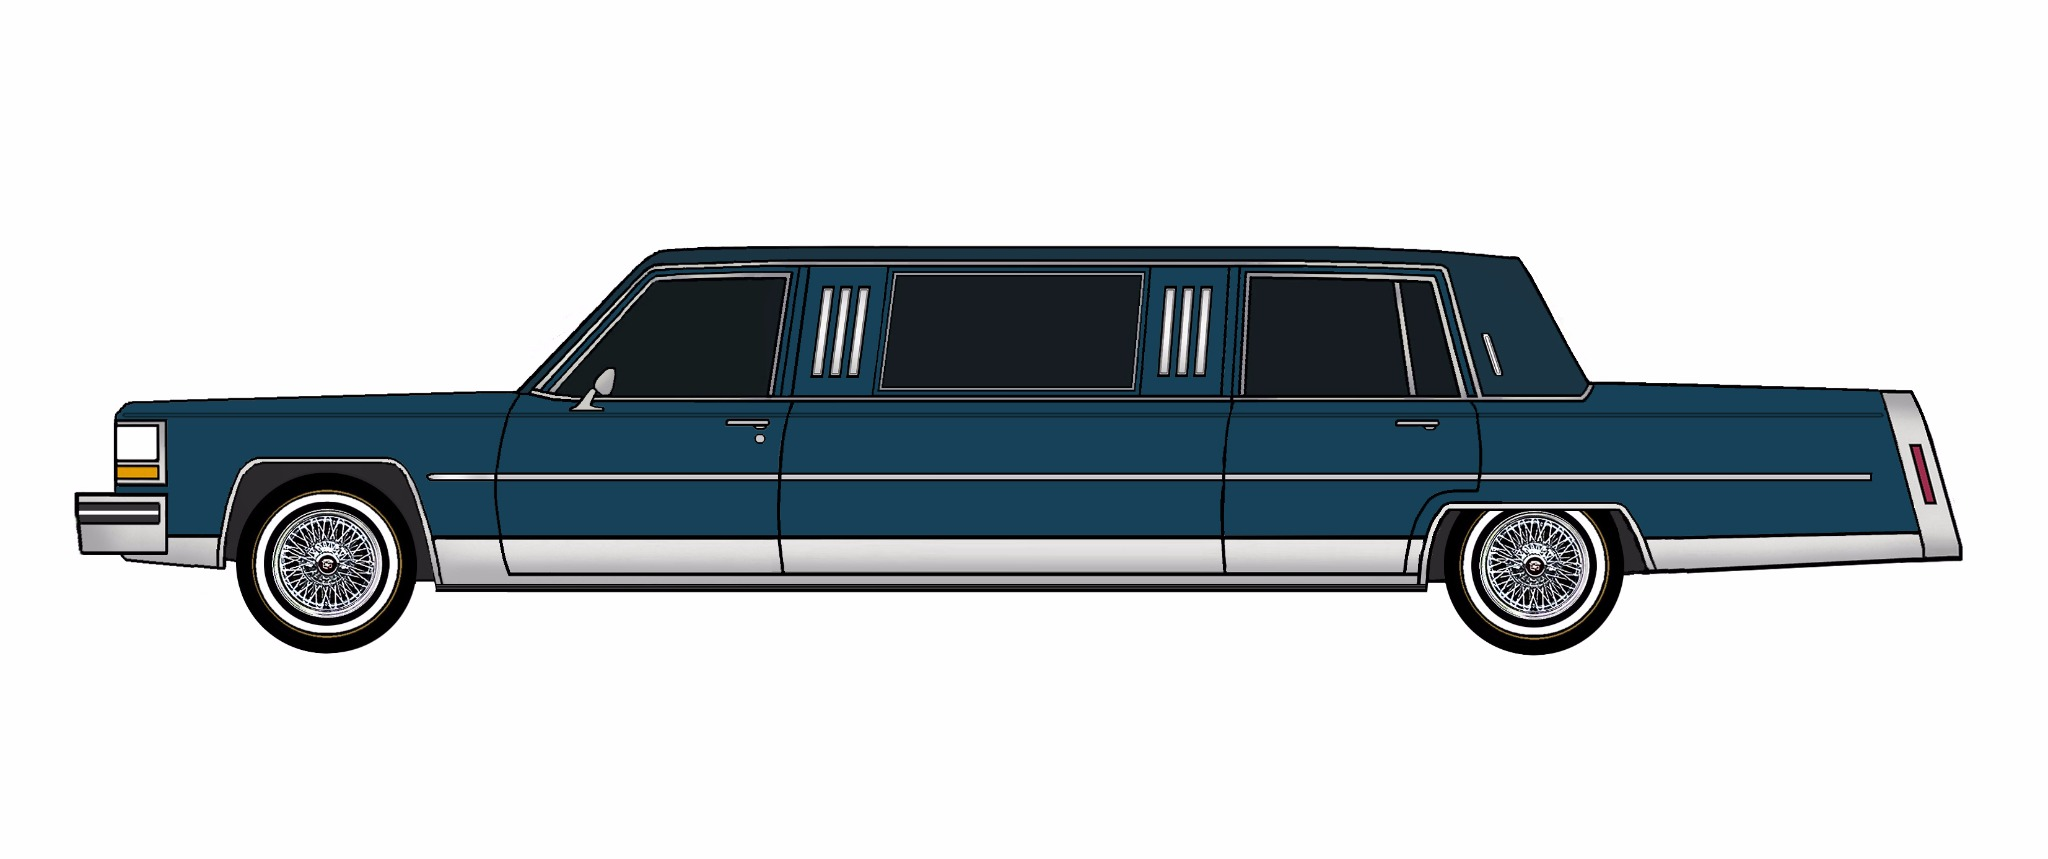 1984 Cadillac Fleetwood Brougham Limo MIDNIGHT BLUE